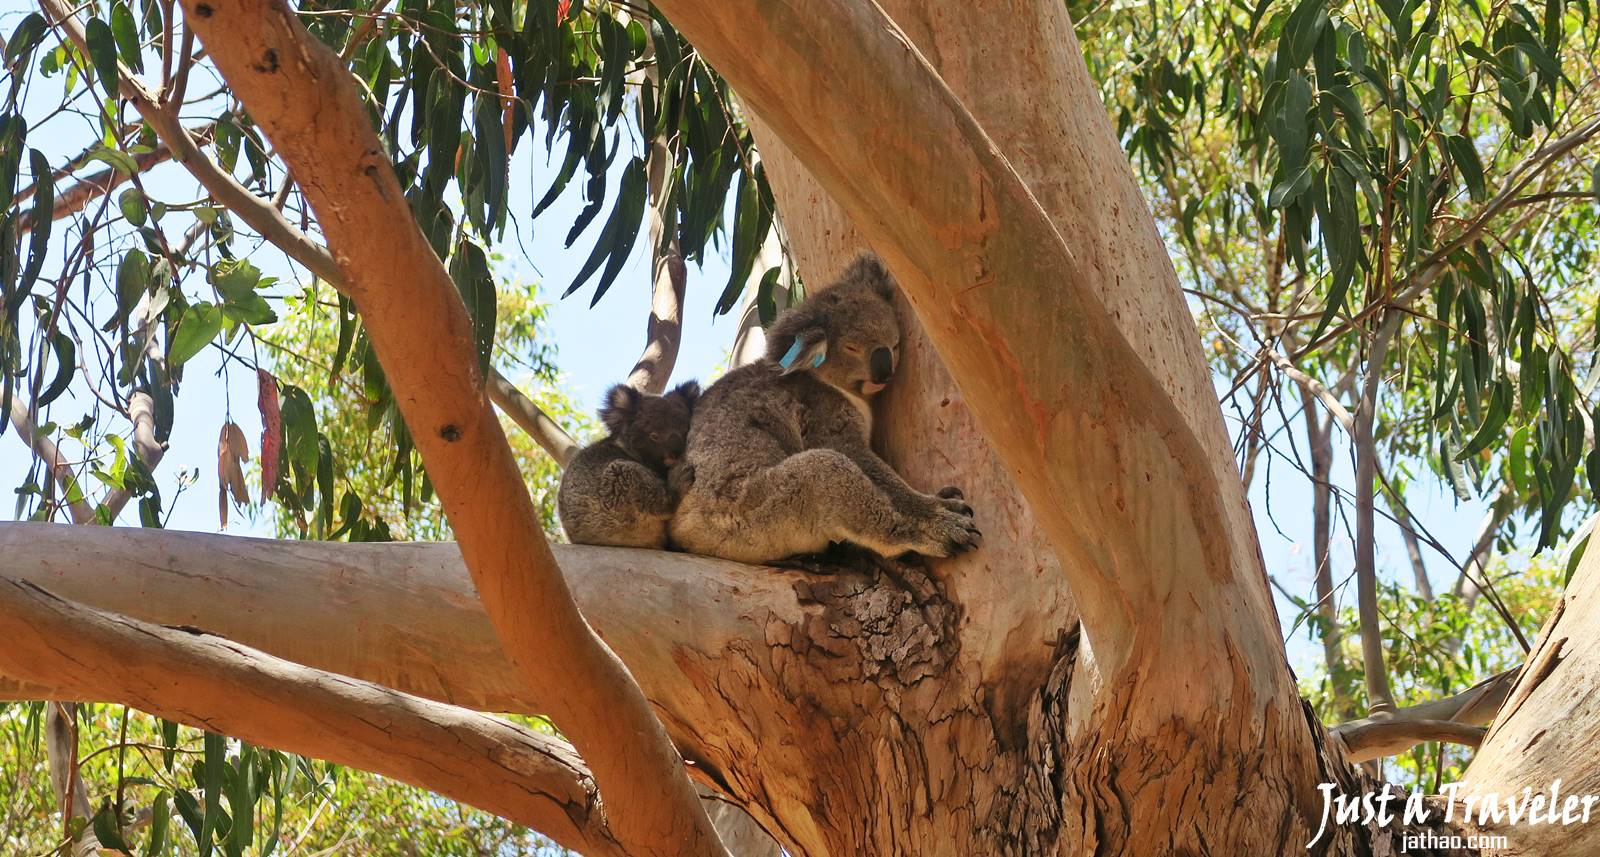 Adelaide-Kangaroo Island-Koala-Transportation-Ferry-Attractions-Itineraries-Recommendation-Travel Blogs-Back-Pack Travel-Independent Travel-Tour-Day Tour-Two Day Tour